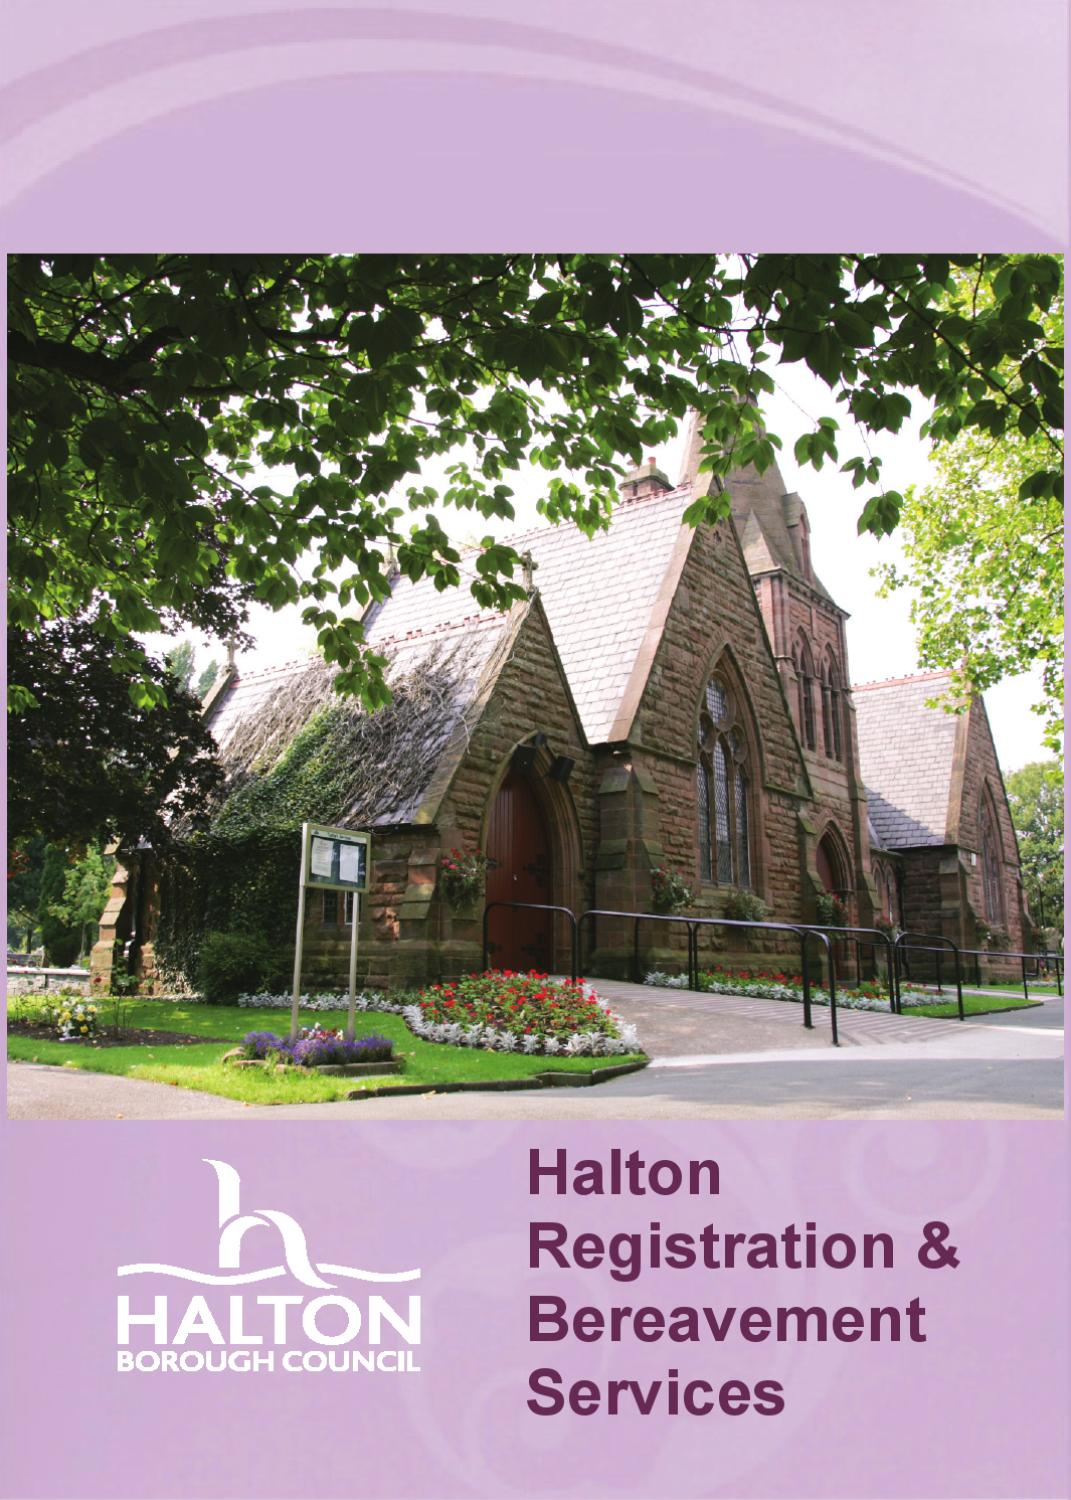 Halton registration and bereavement services by garry grimshaw issuu aiddatafo Choice Image